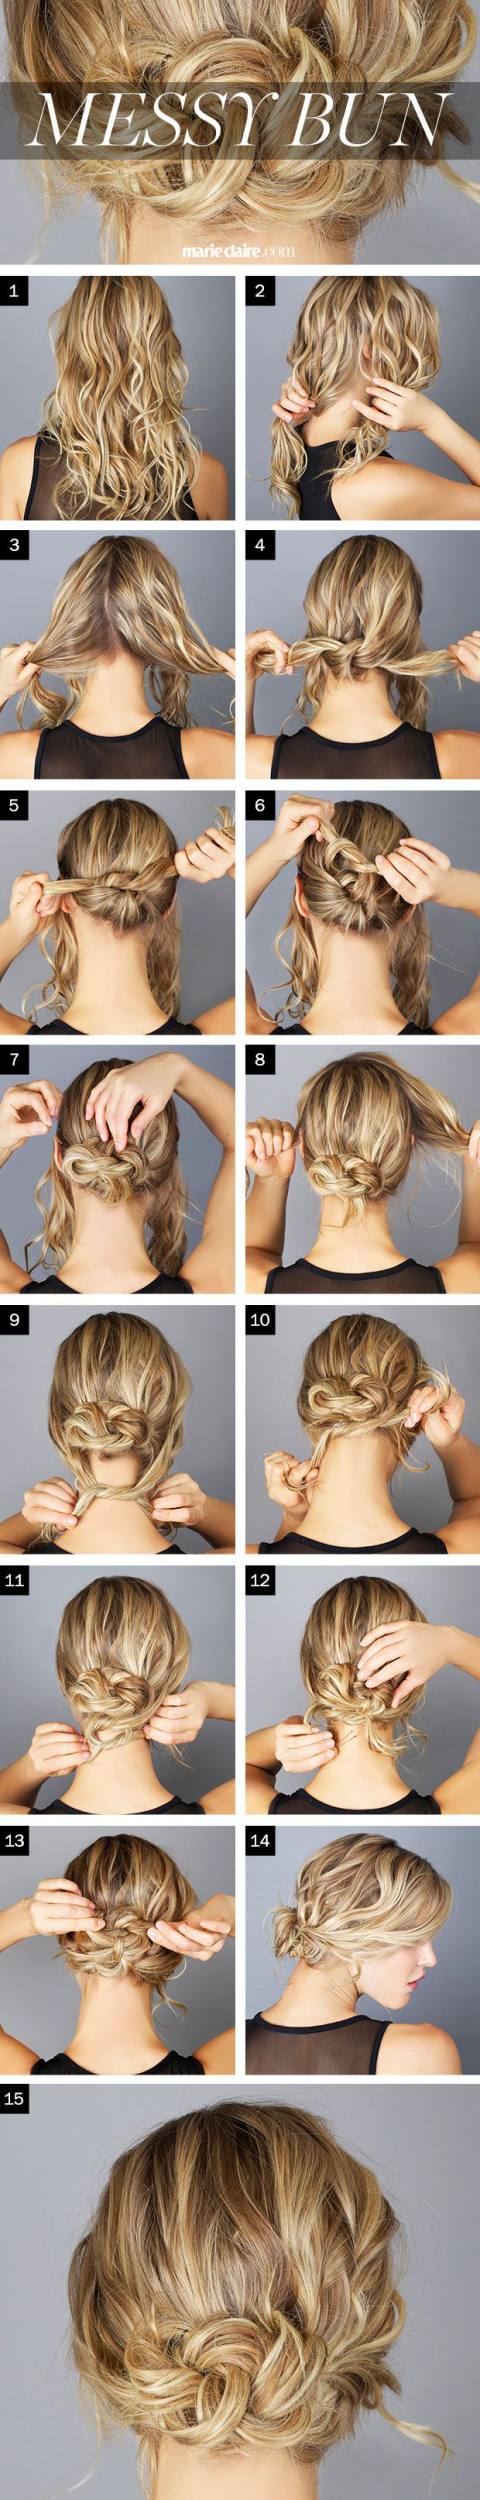 Pin By Brittany Girardot On Projects To Try Hair Styles Hair Bun Tutorial Hair Hacks